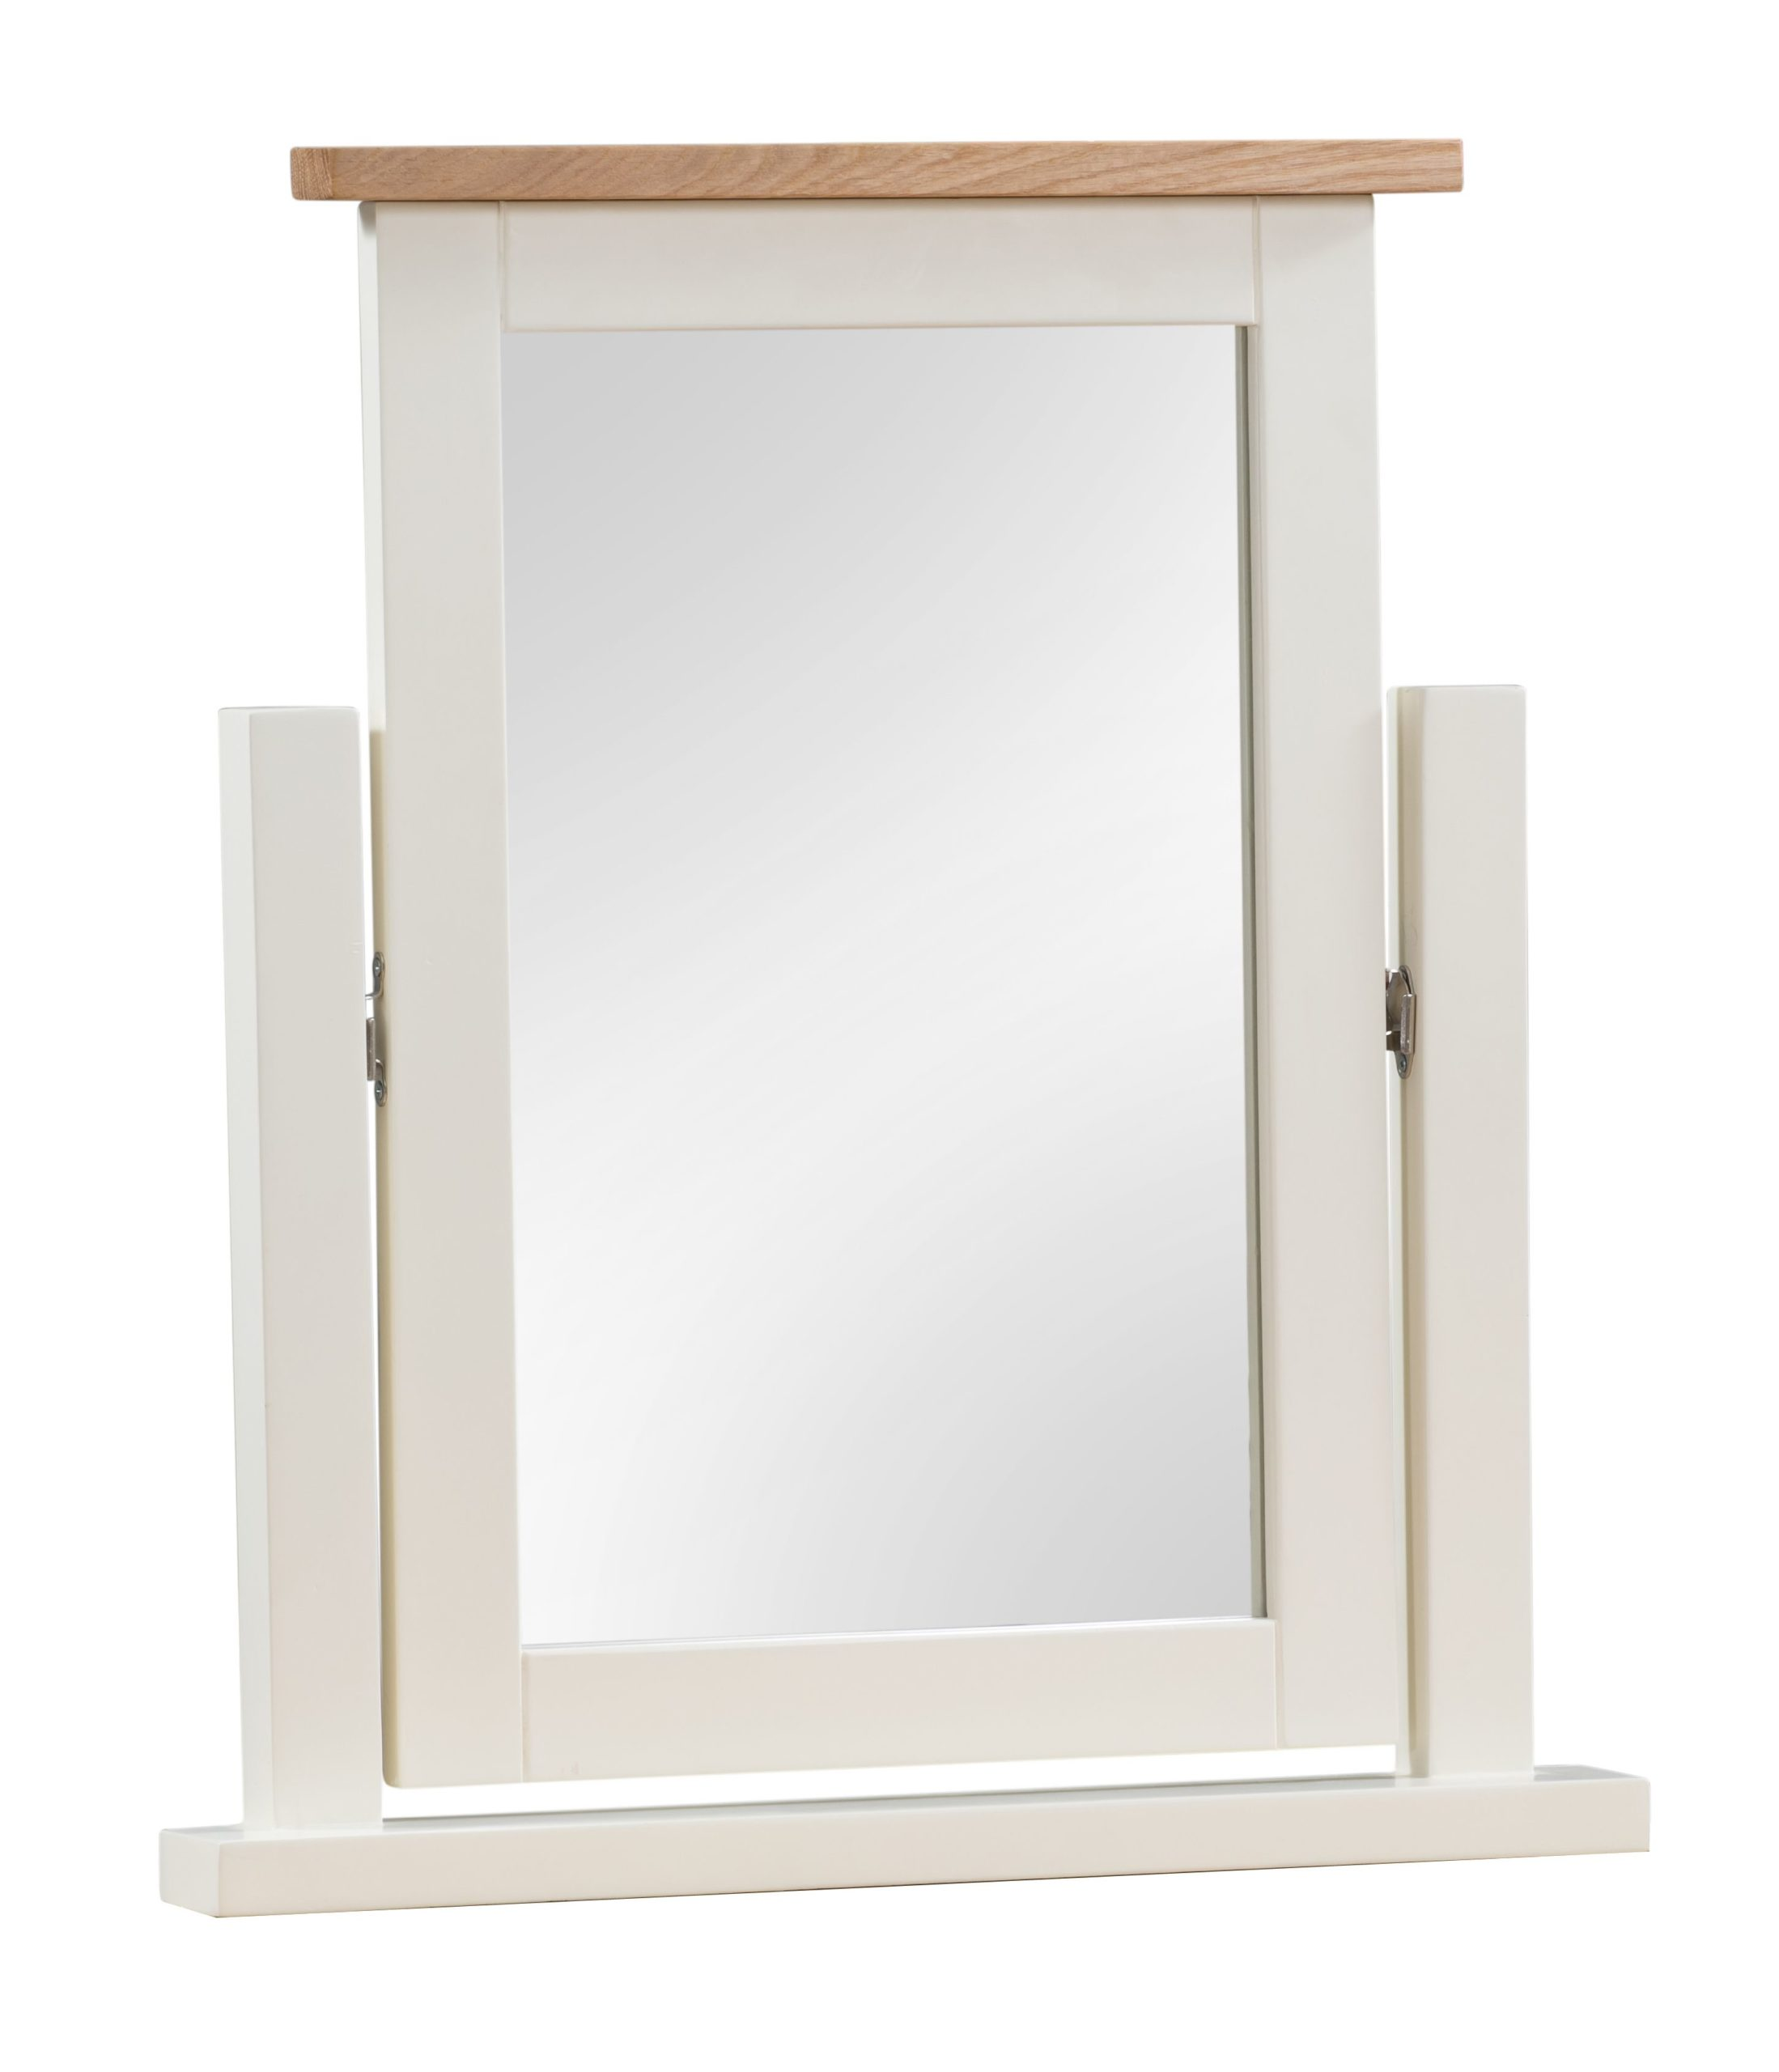 Dorset painted dressing table mirror